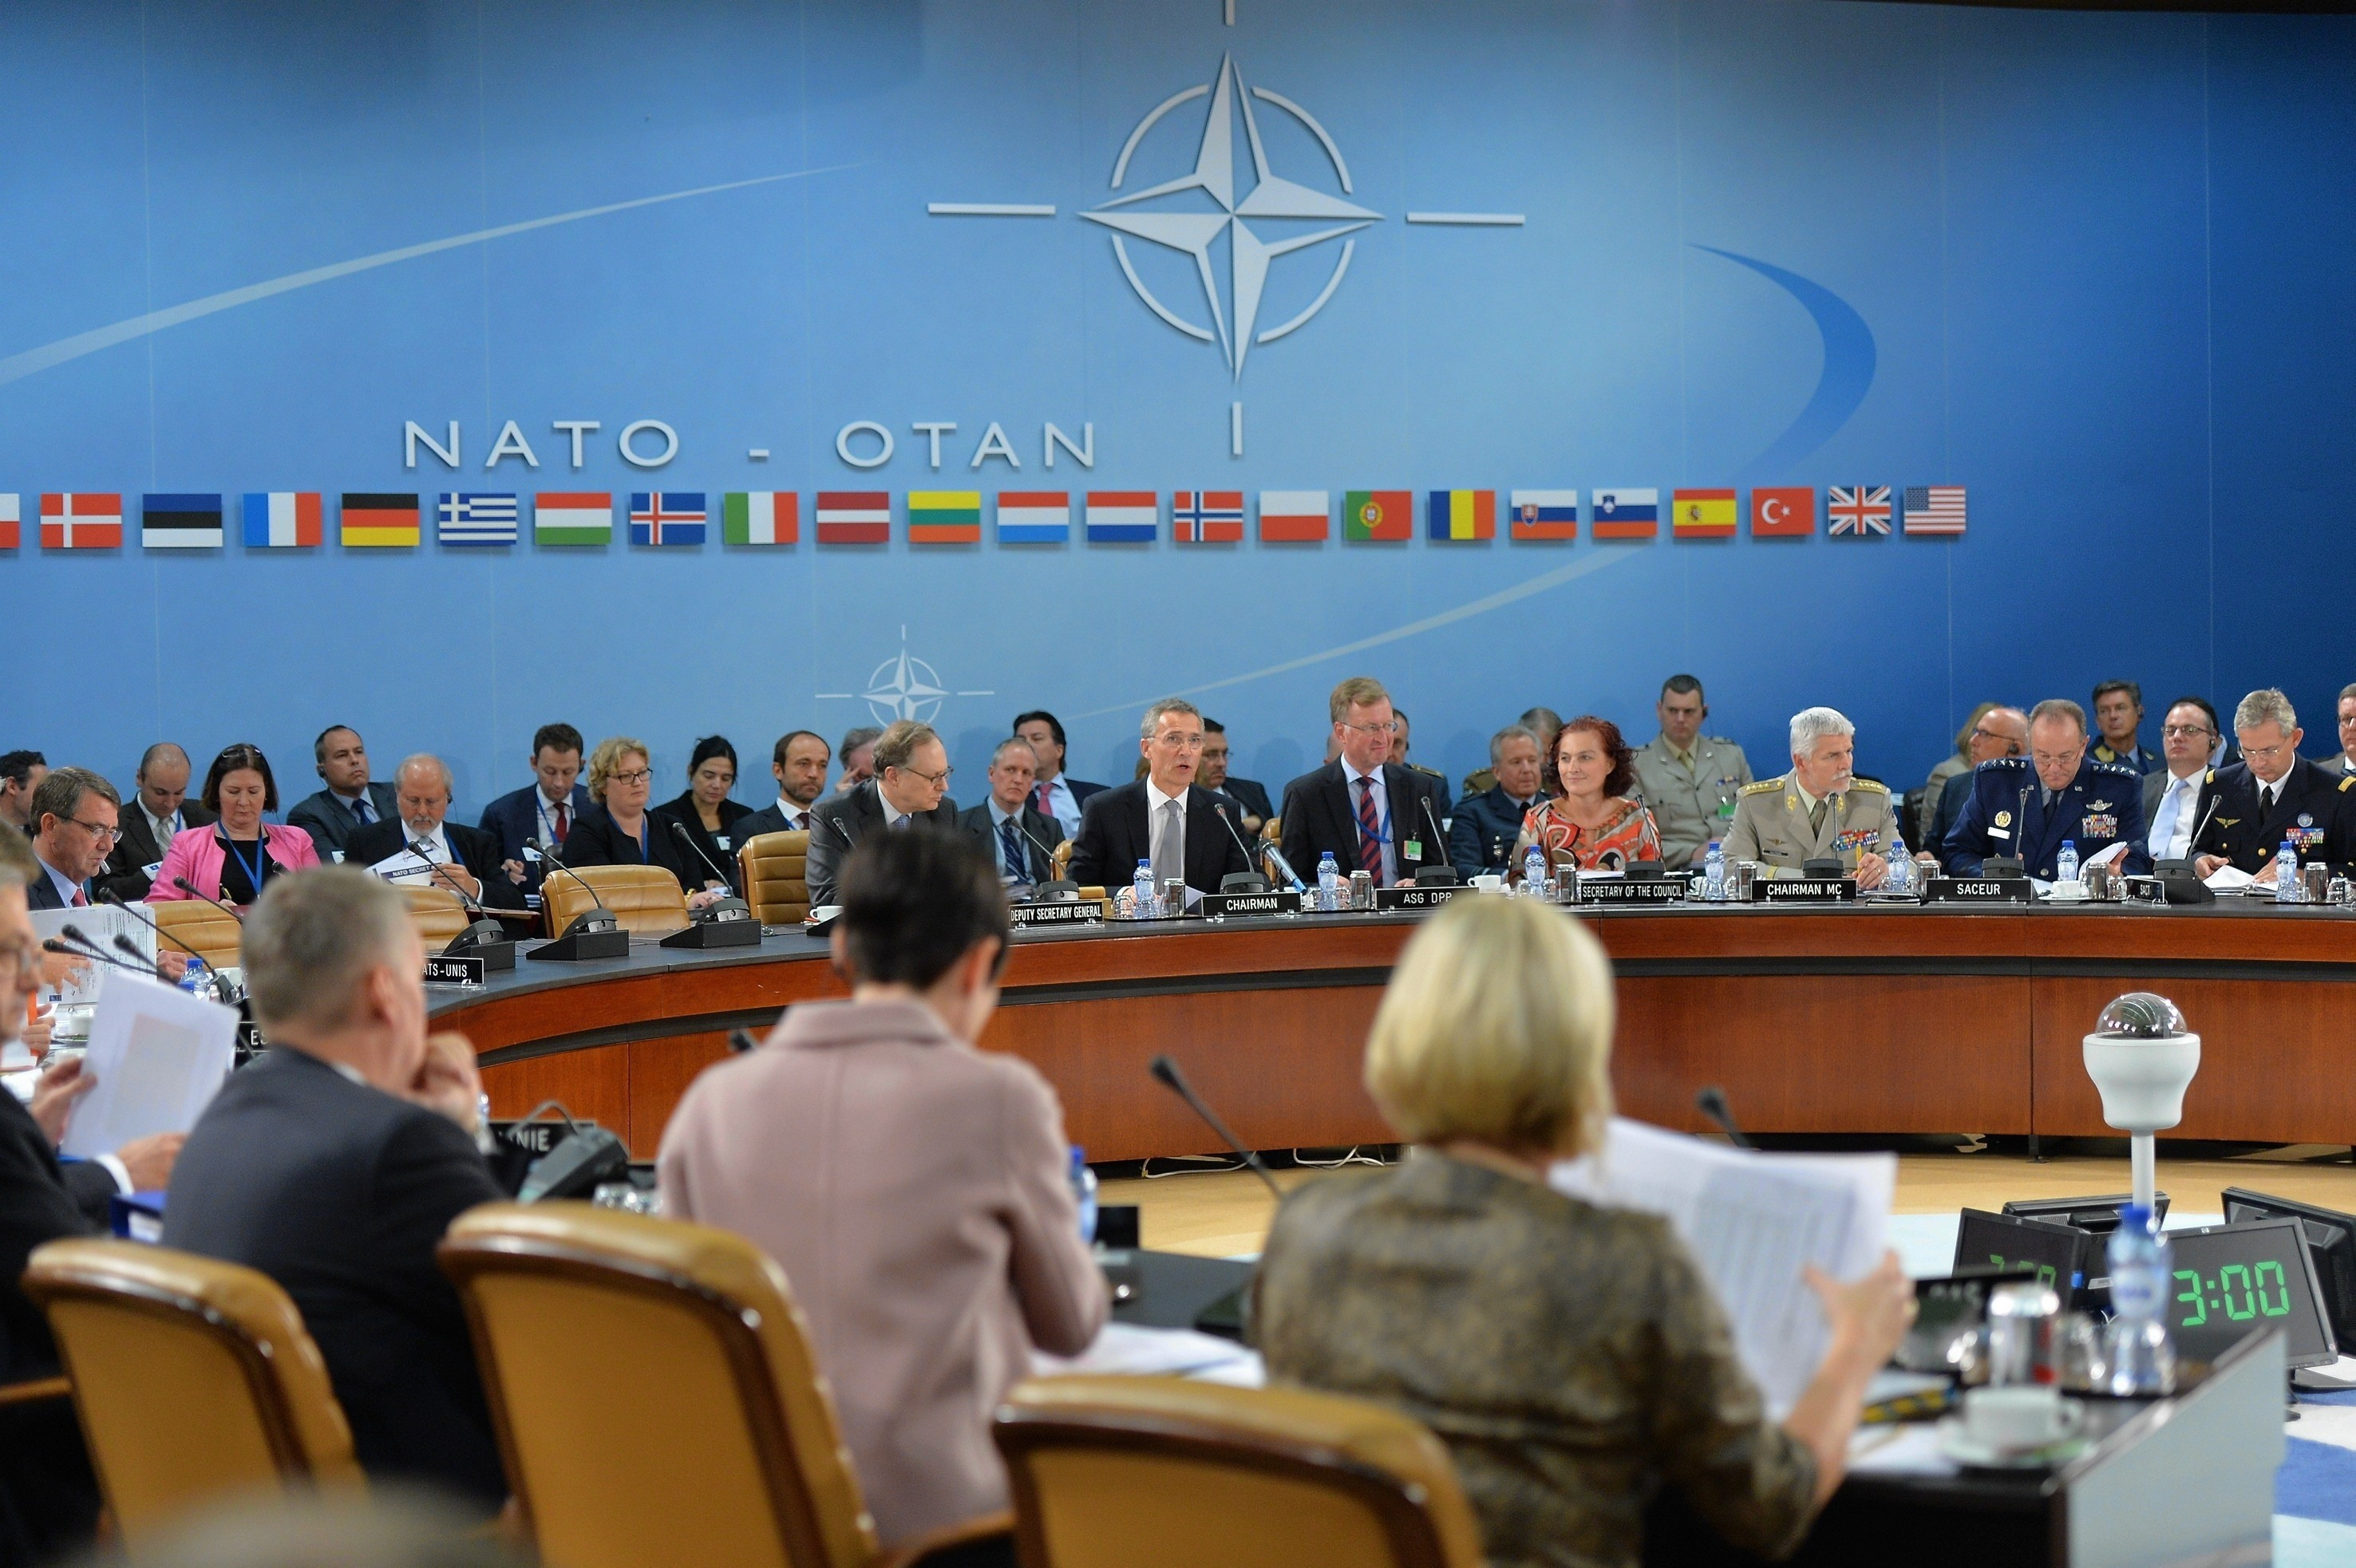 nato ministers 8 october 2015